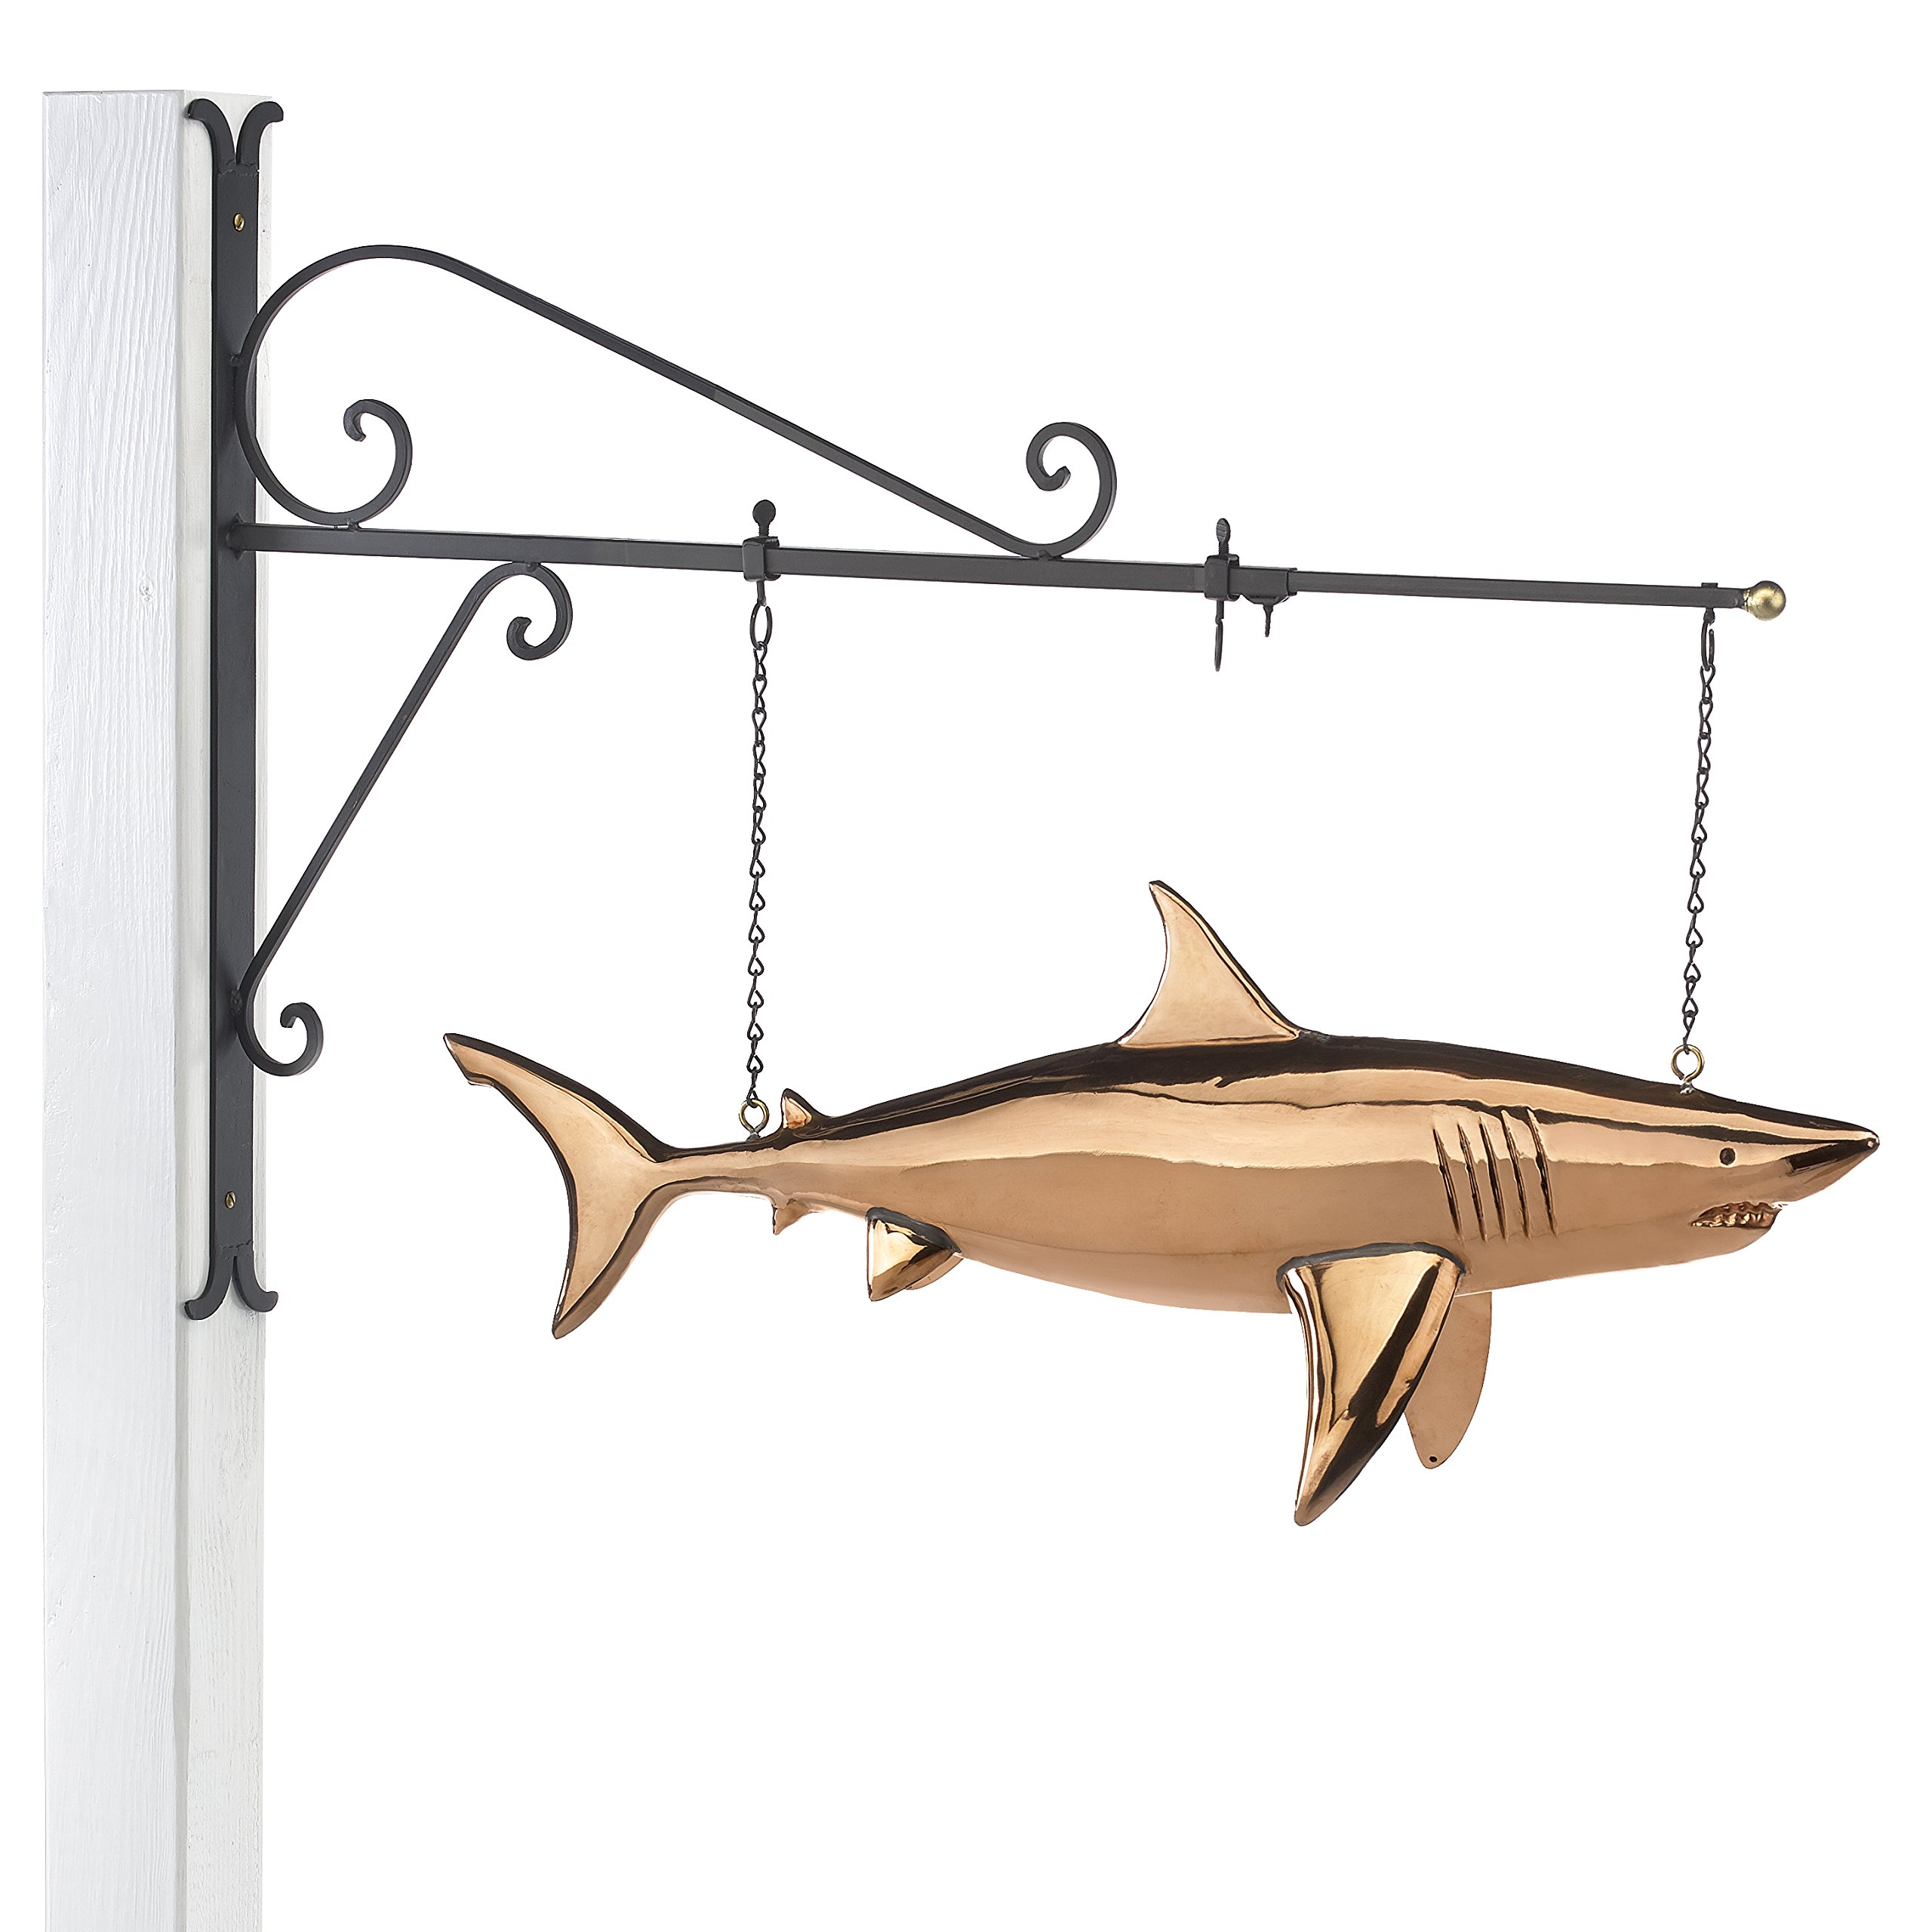 Good Directions Hanging Shark Pure Copper Weathervane Sign with Decorative Scroll Wall Bracket - Welcome Sign, Home / Entrance / Entryway Décor